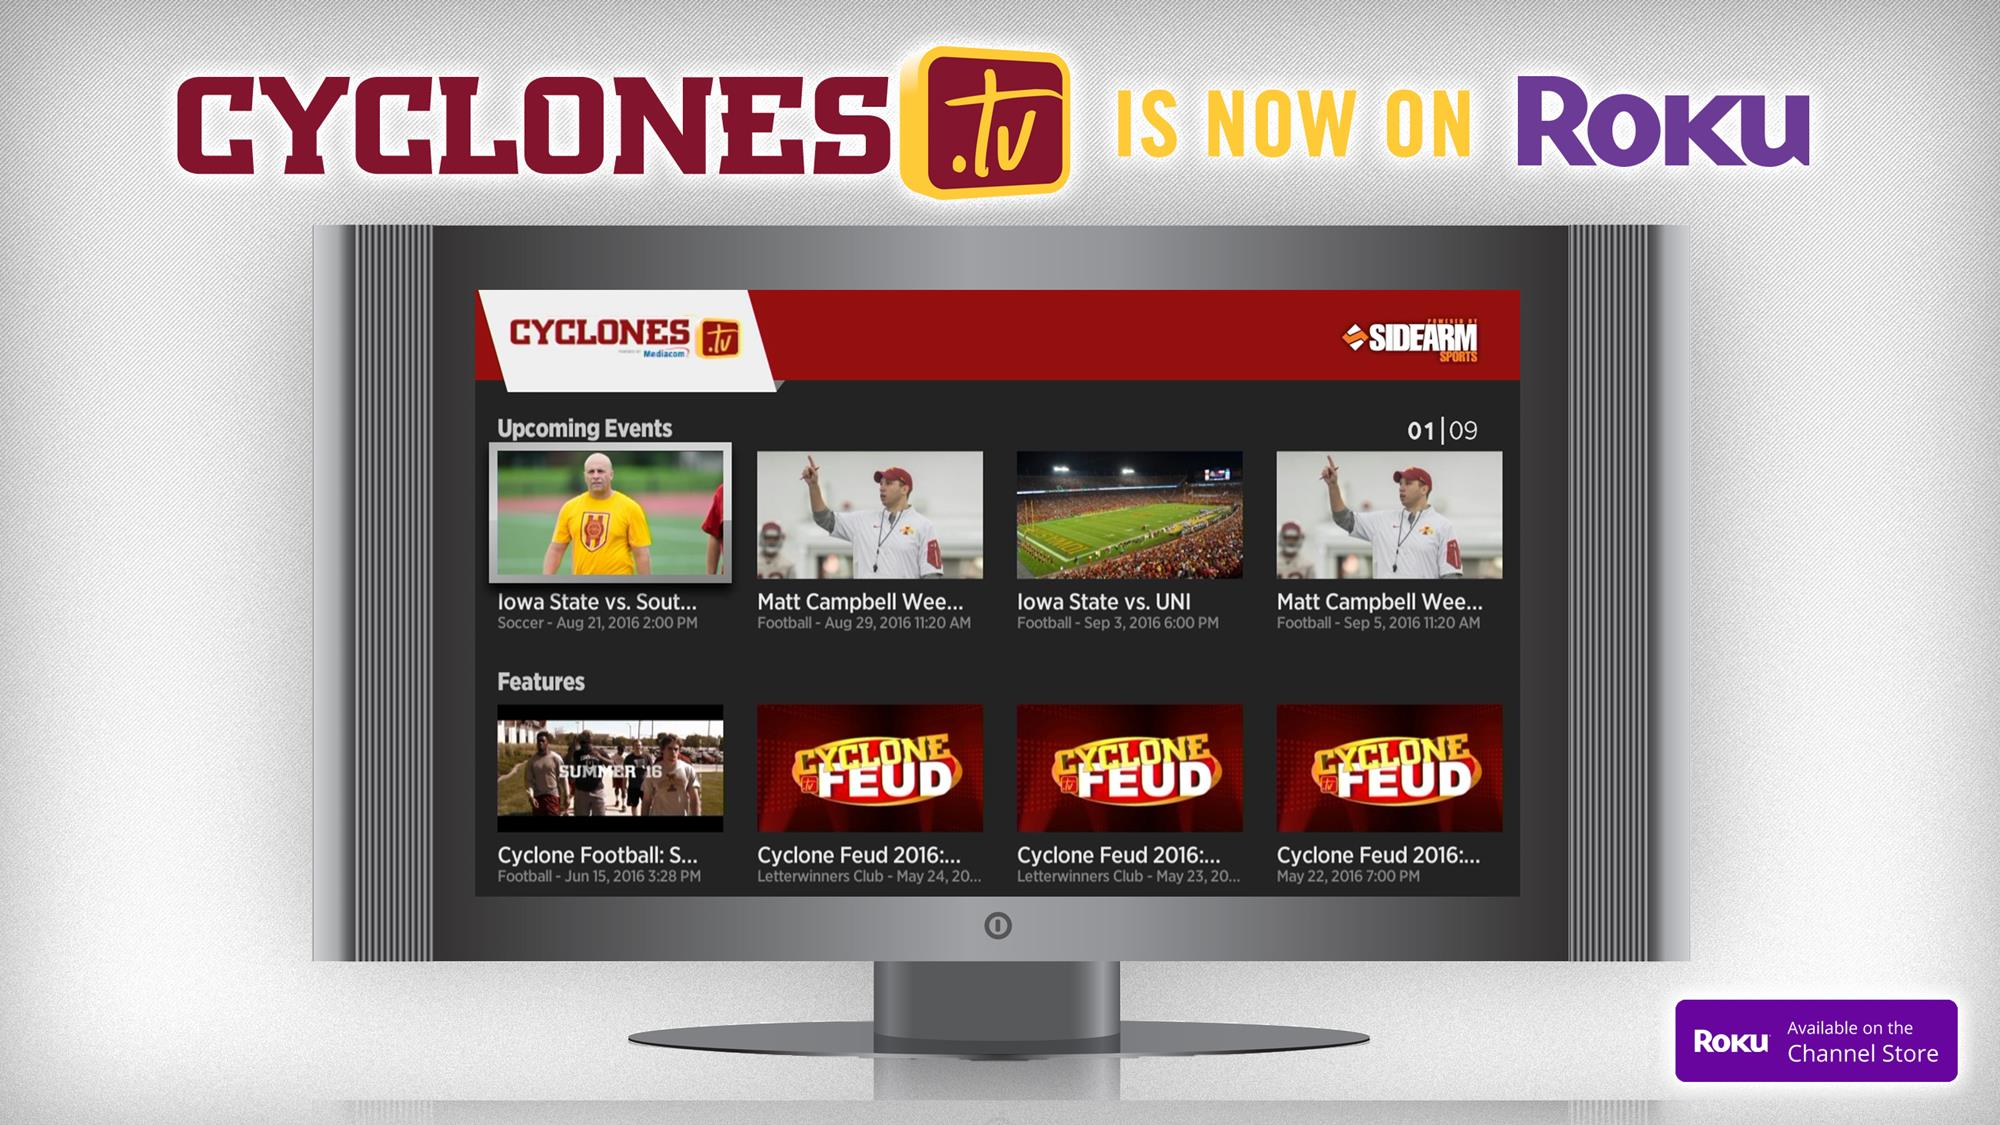 Cyclones tv Debuts Roku Channel - Iowa State University